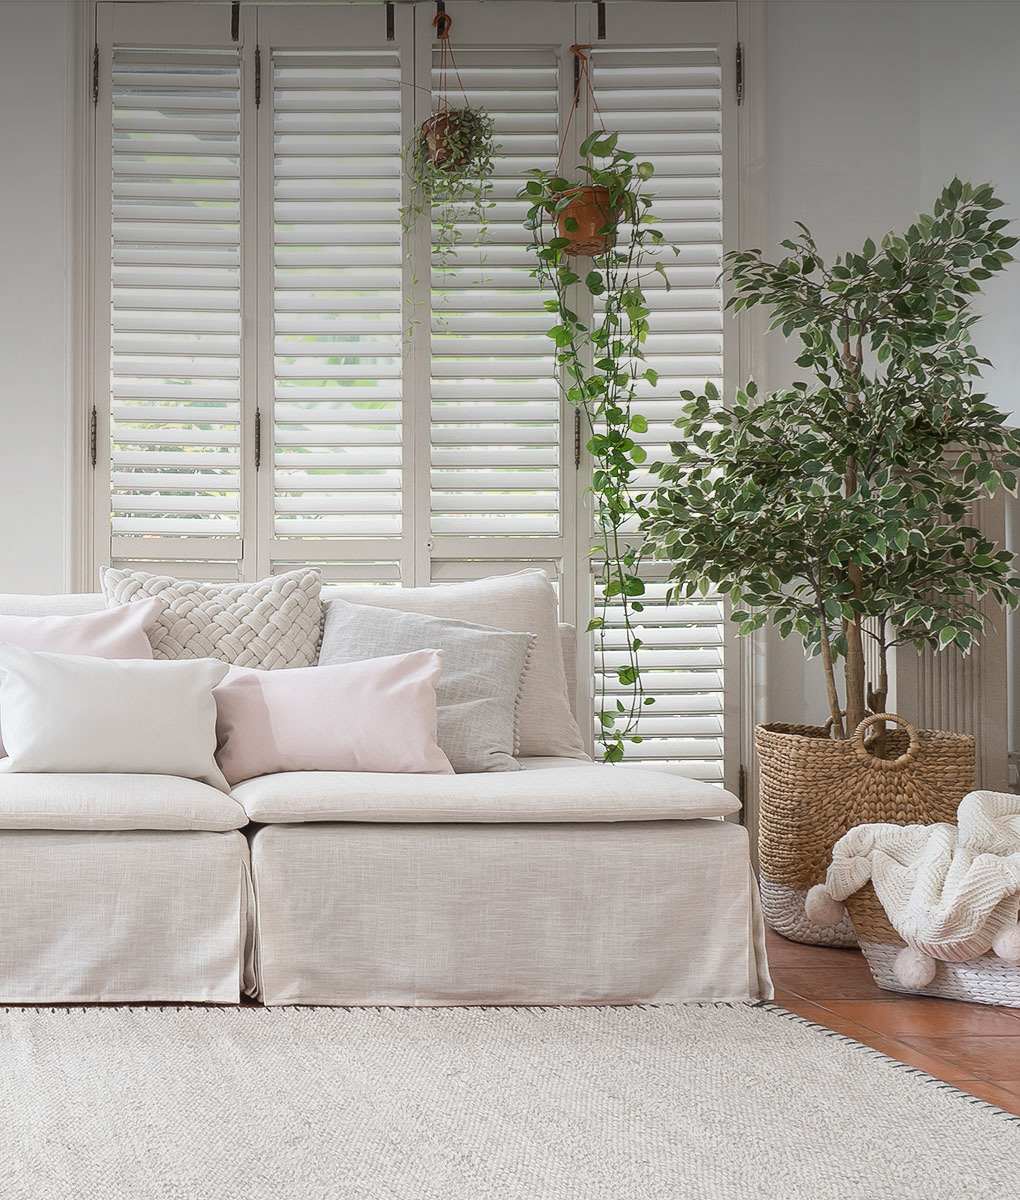 Full Size of Couch Alternatives For Small Spaces To Sleeper Sofas Crossword Cheap Sofa Ikea Togo Uk Living Room Best Bed Reddit Comfort Works Bezge Und Nach Ma Muuto Wk Sofa Sofa Alternatives